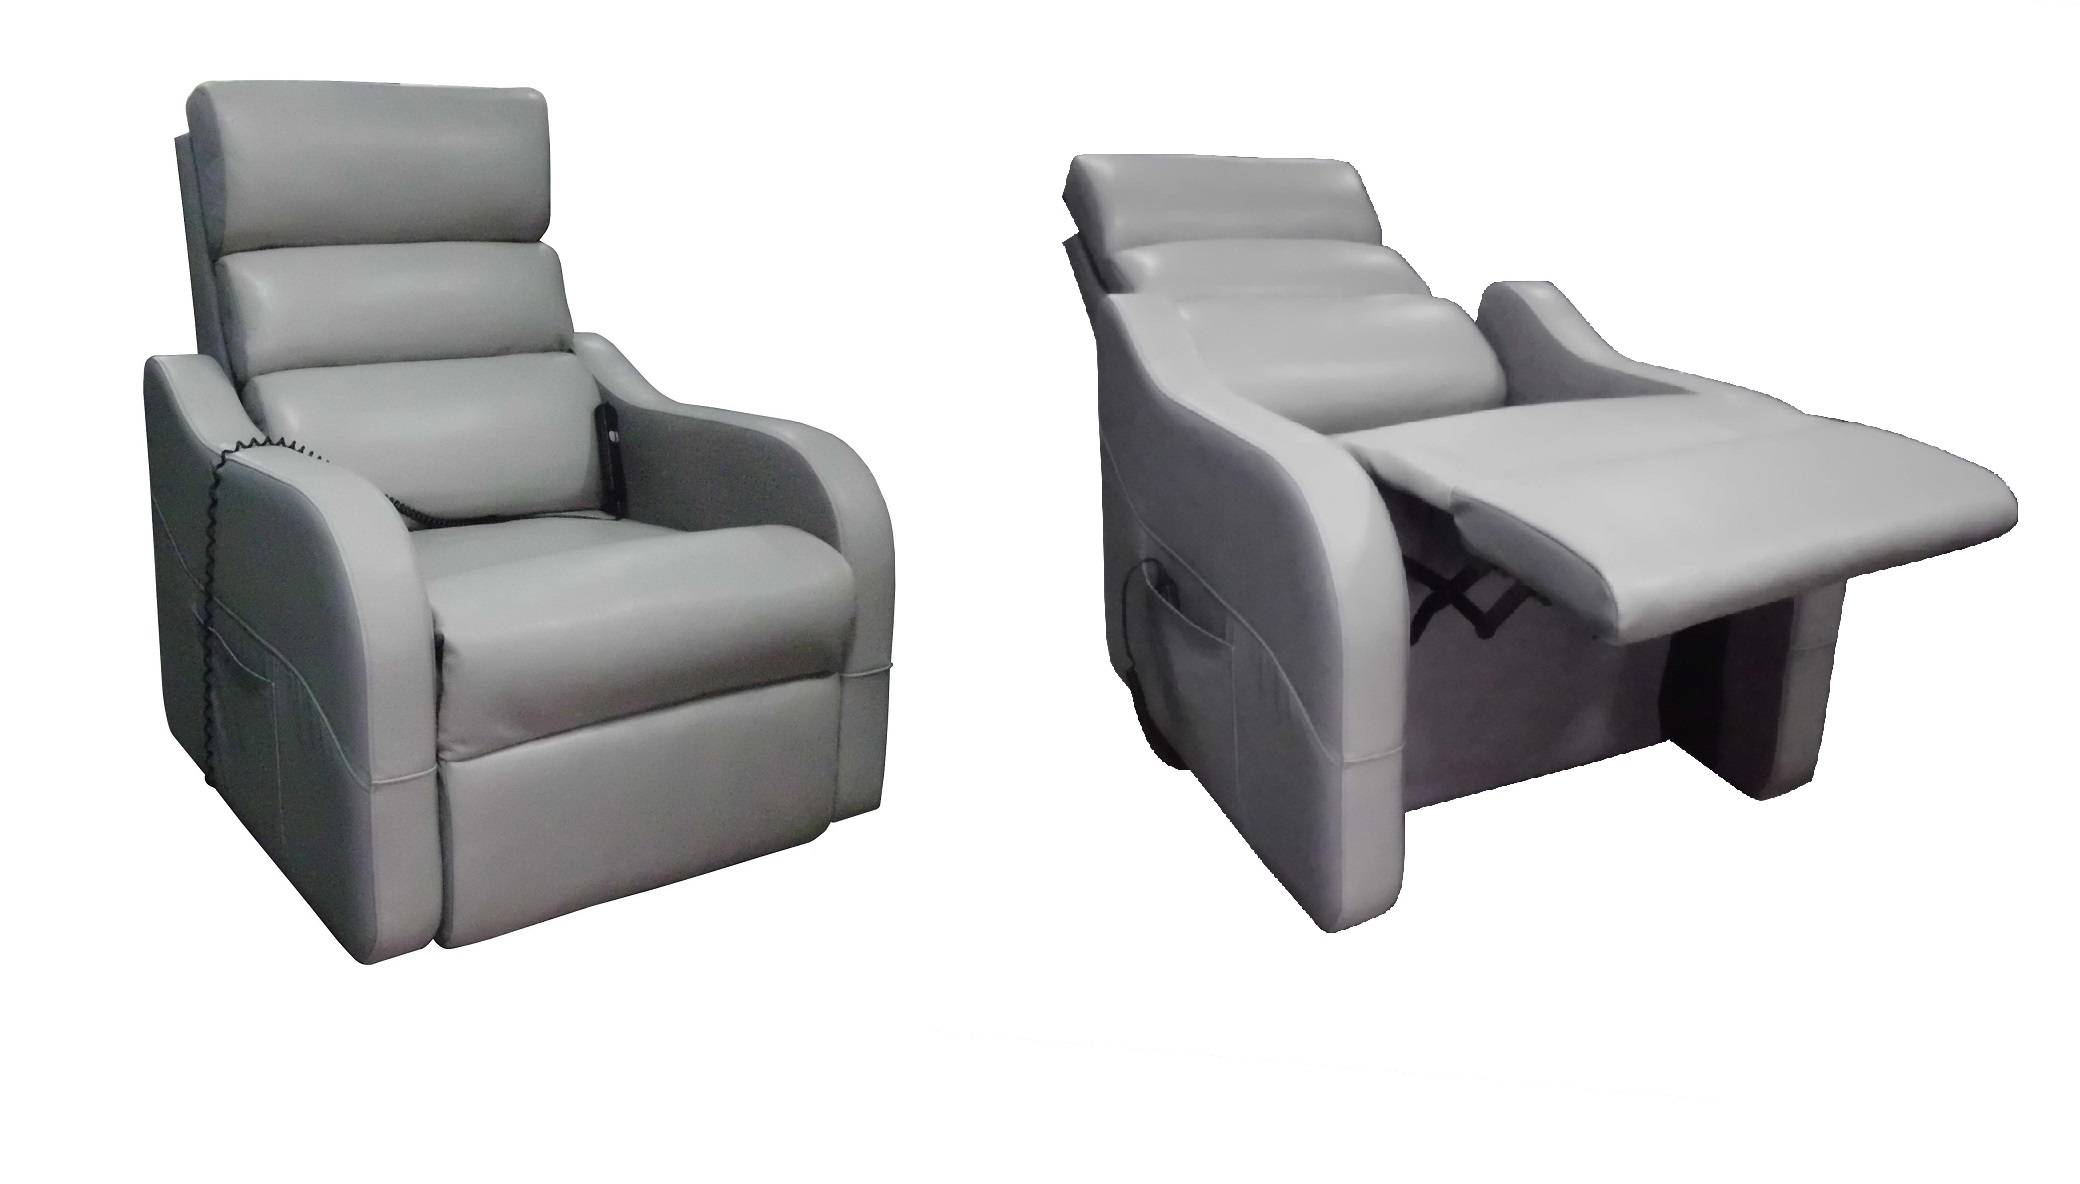 BH-8233 Recliner Chair, Recliner Sofa, Reclining Chair, Reclining Sofa, Home Furniture, House Furn